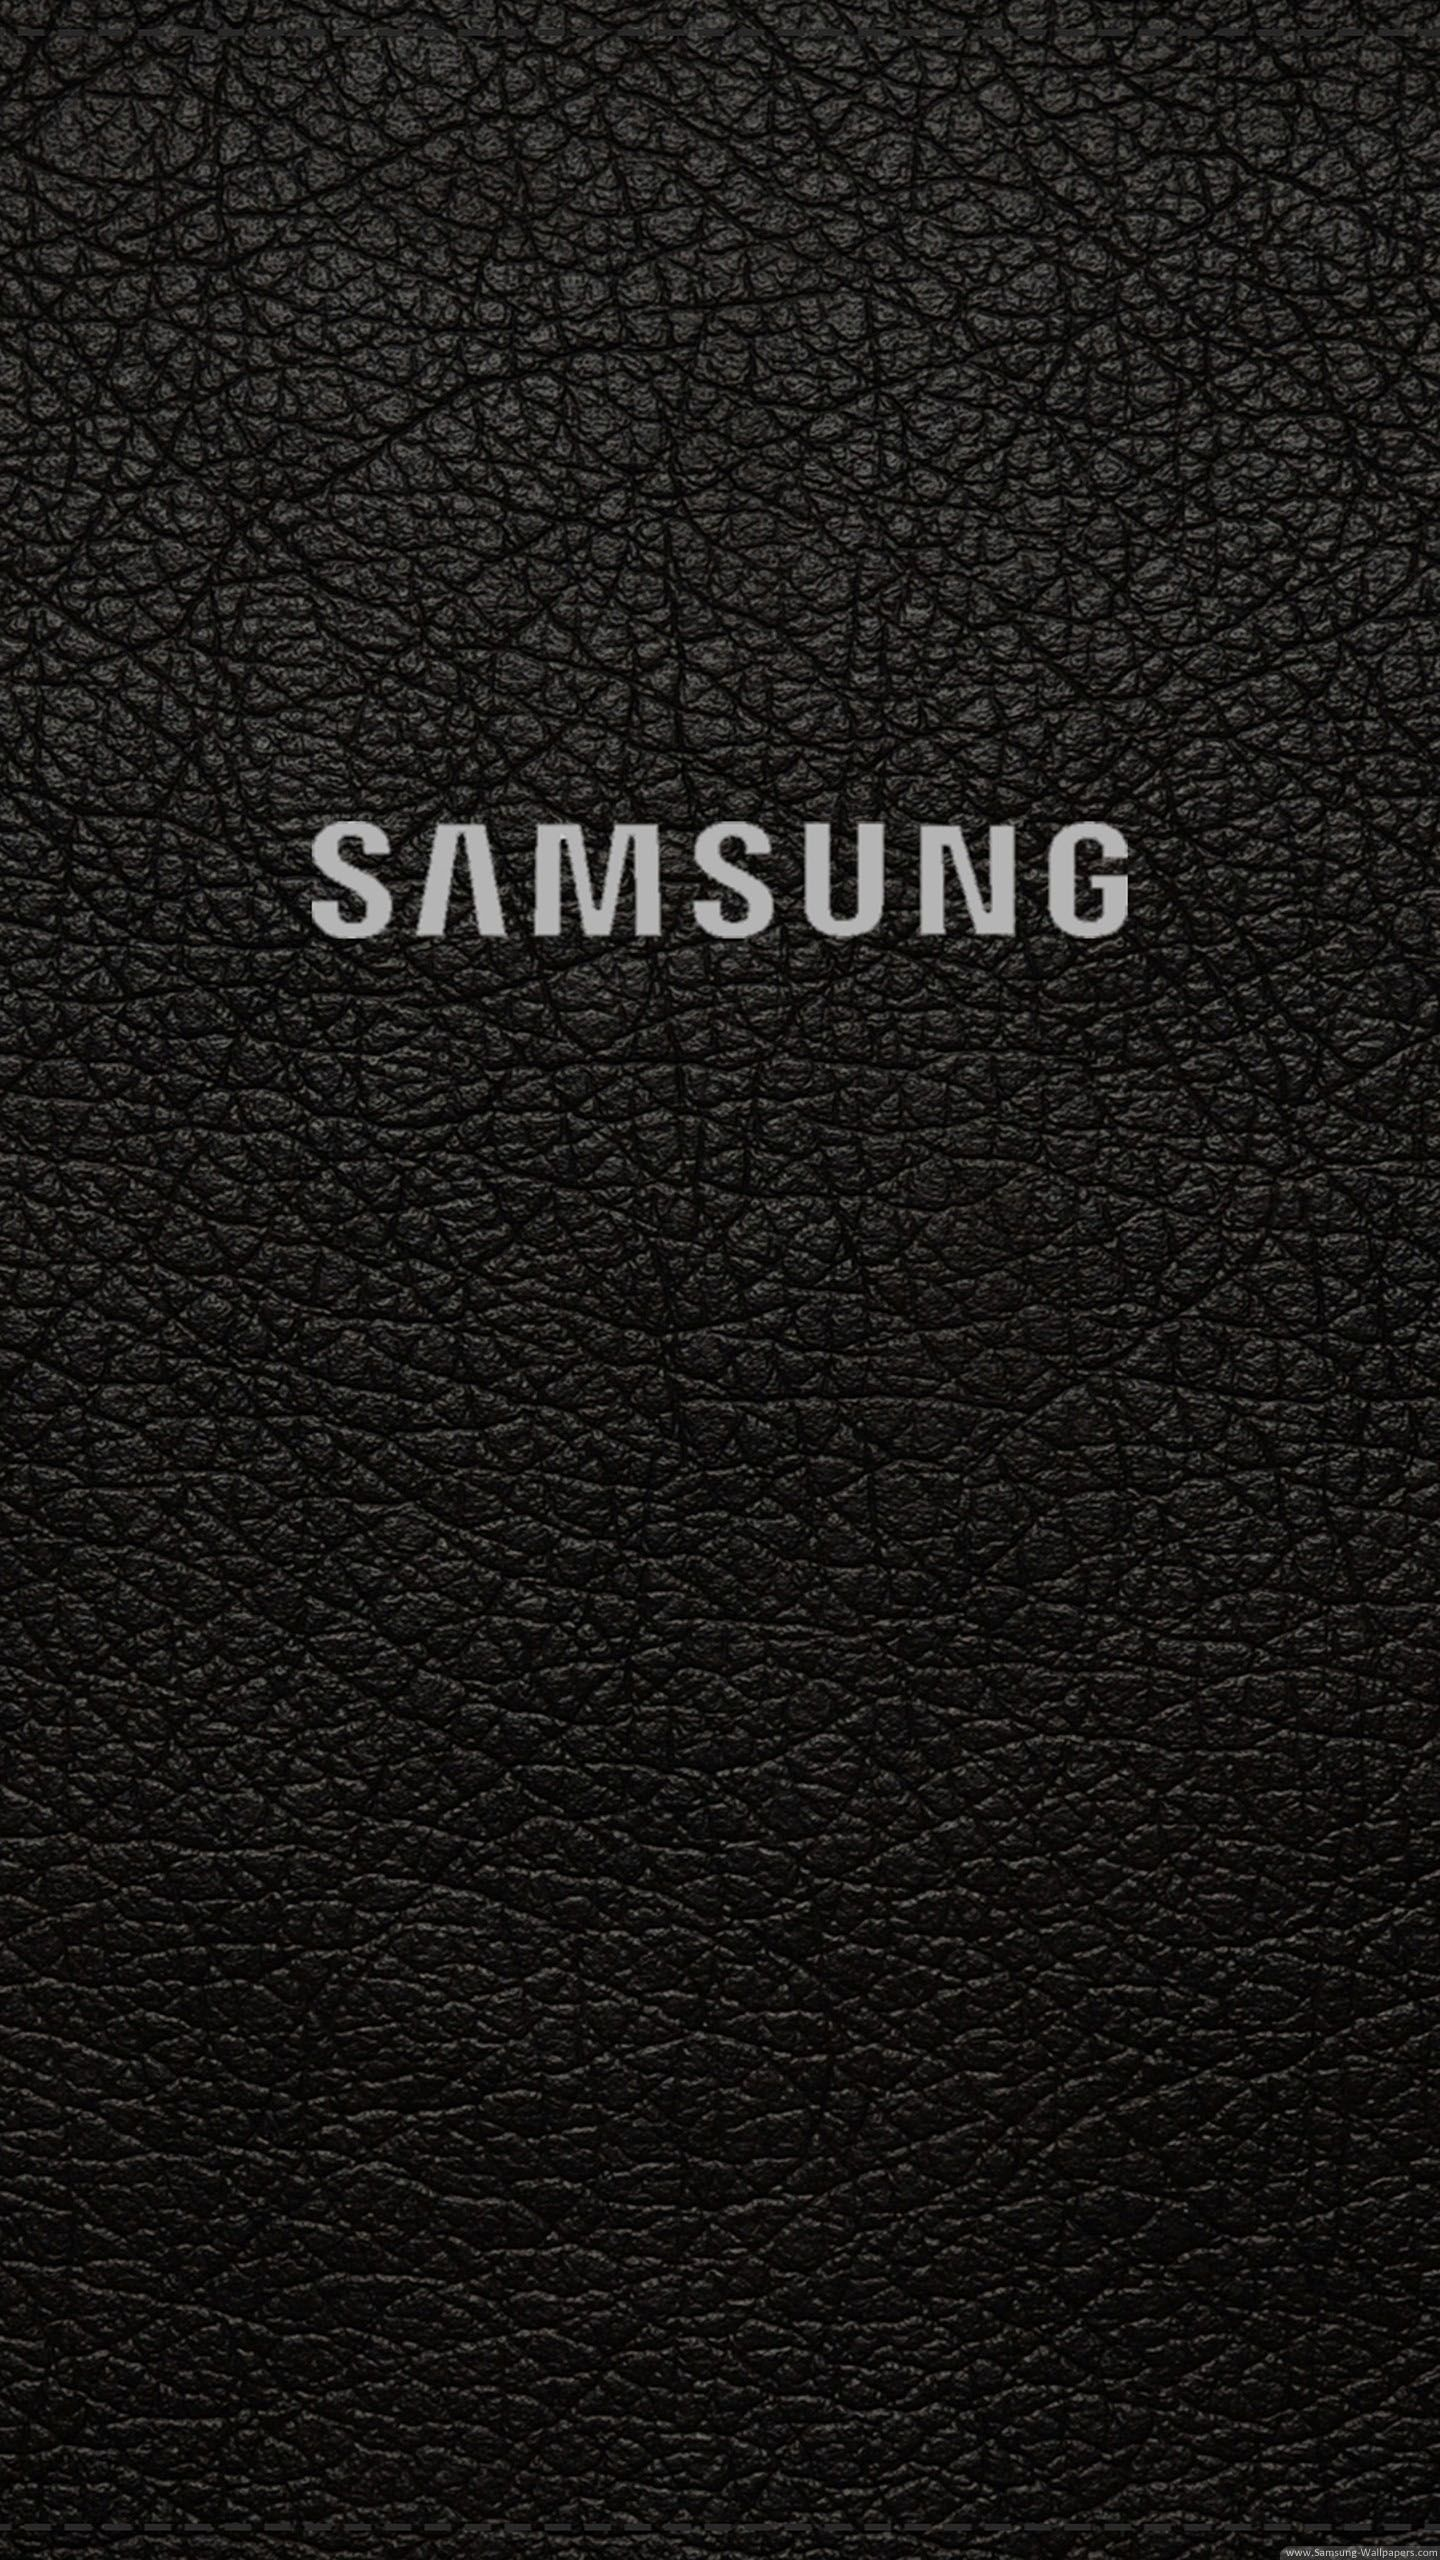 98 Samsung Galaxy Logo Wallpapers On Wallpapersafari